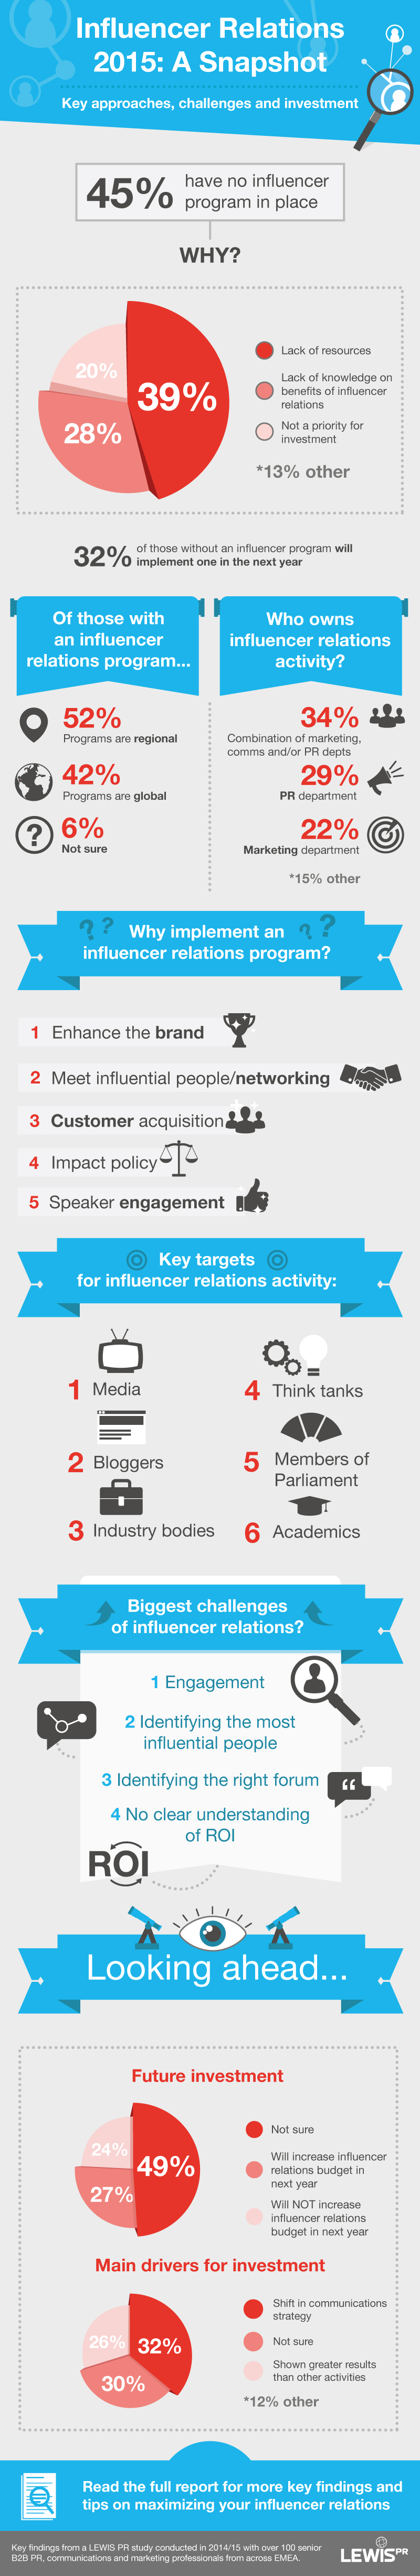 Influencer-Report-Infographic-FINAL